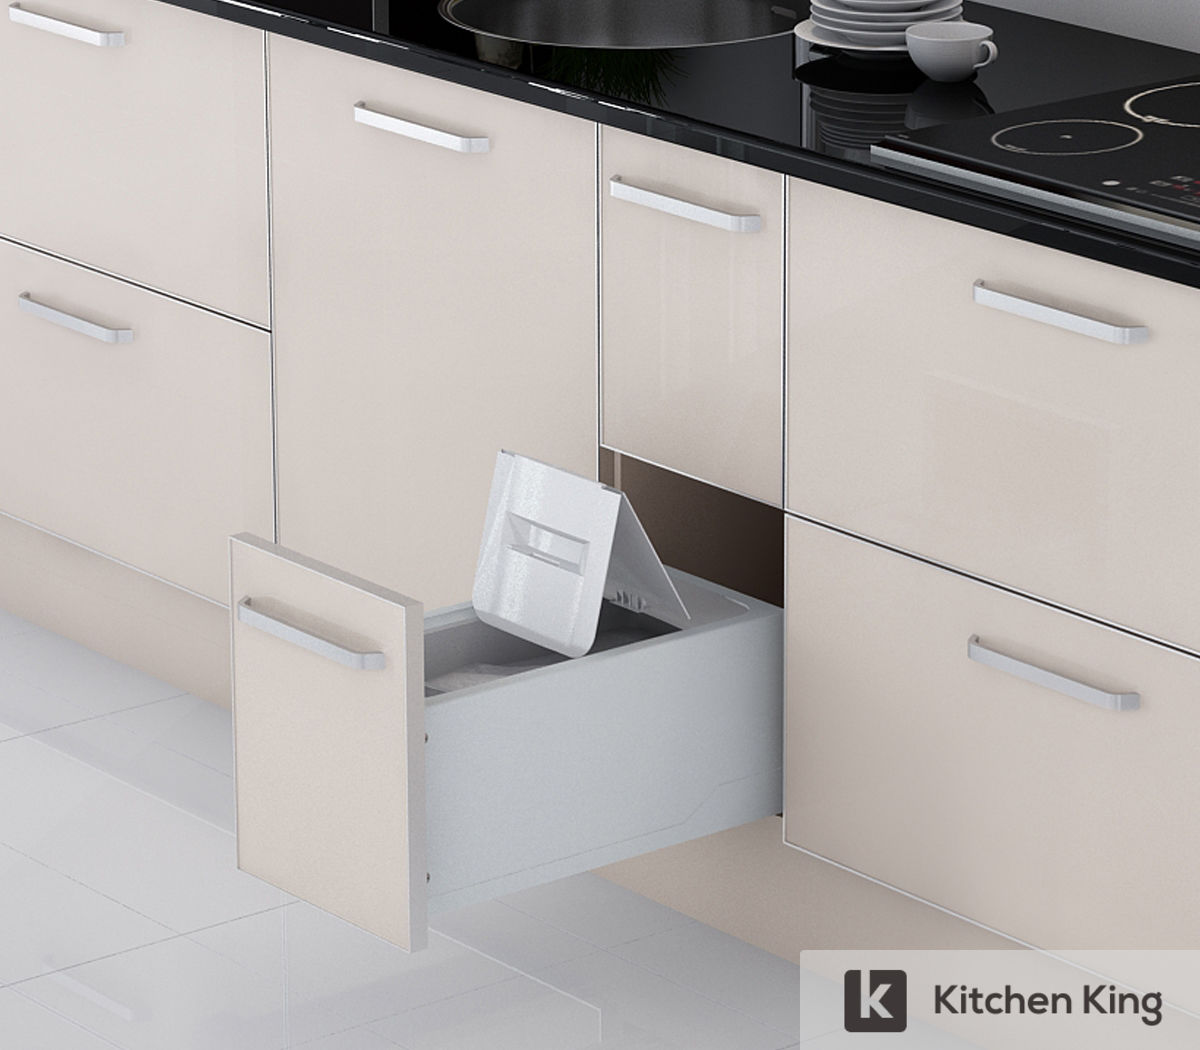 Kitchen Cabinet Accessories Pull Out: Kitchen Accessories, Kitchen Cabinet Pull Out In Dubai